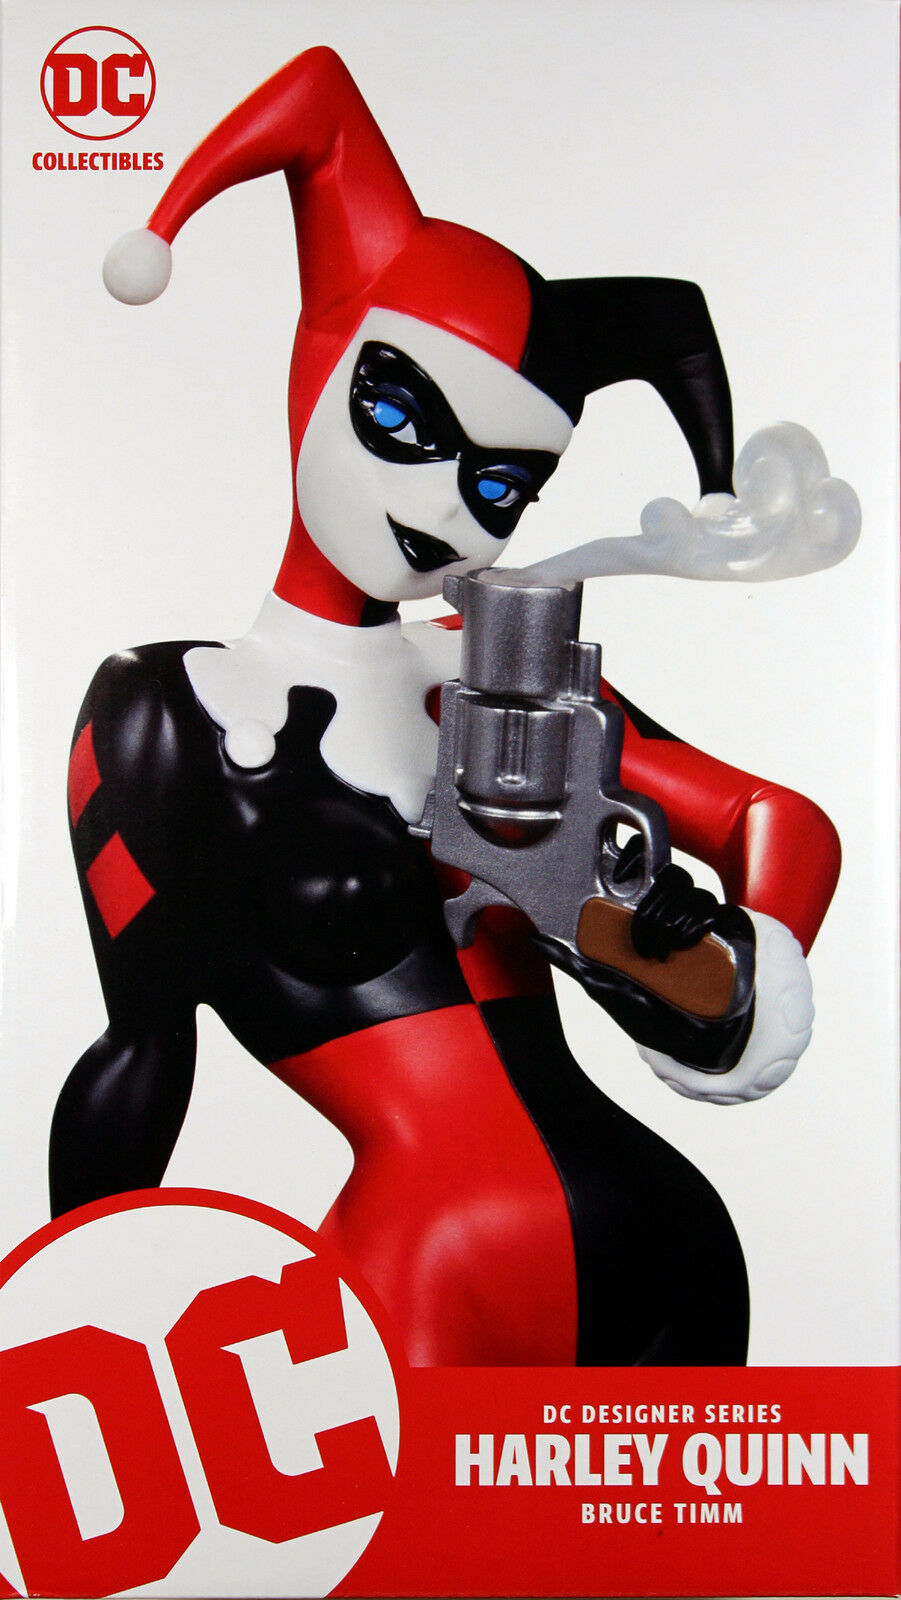 DC Collectibles  Designer Series  HARLEY QUINN STATUE  Bruce Timm